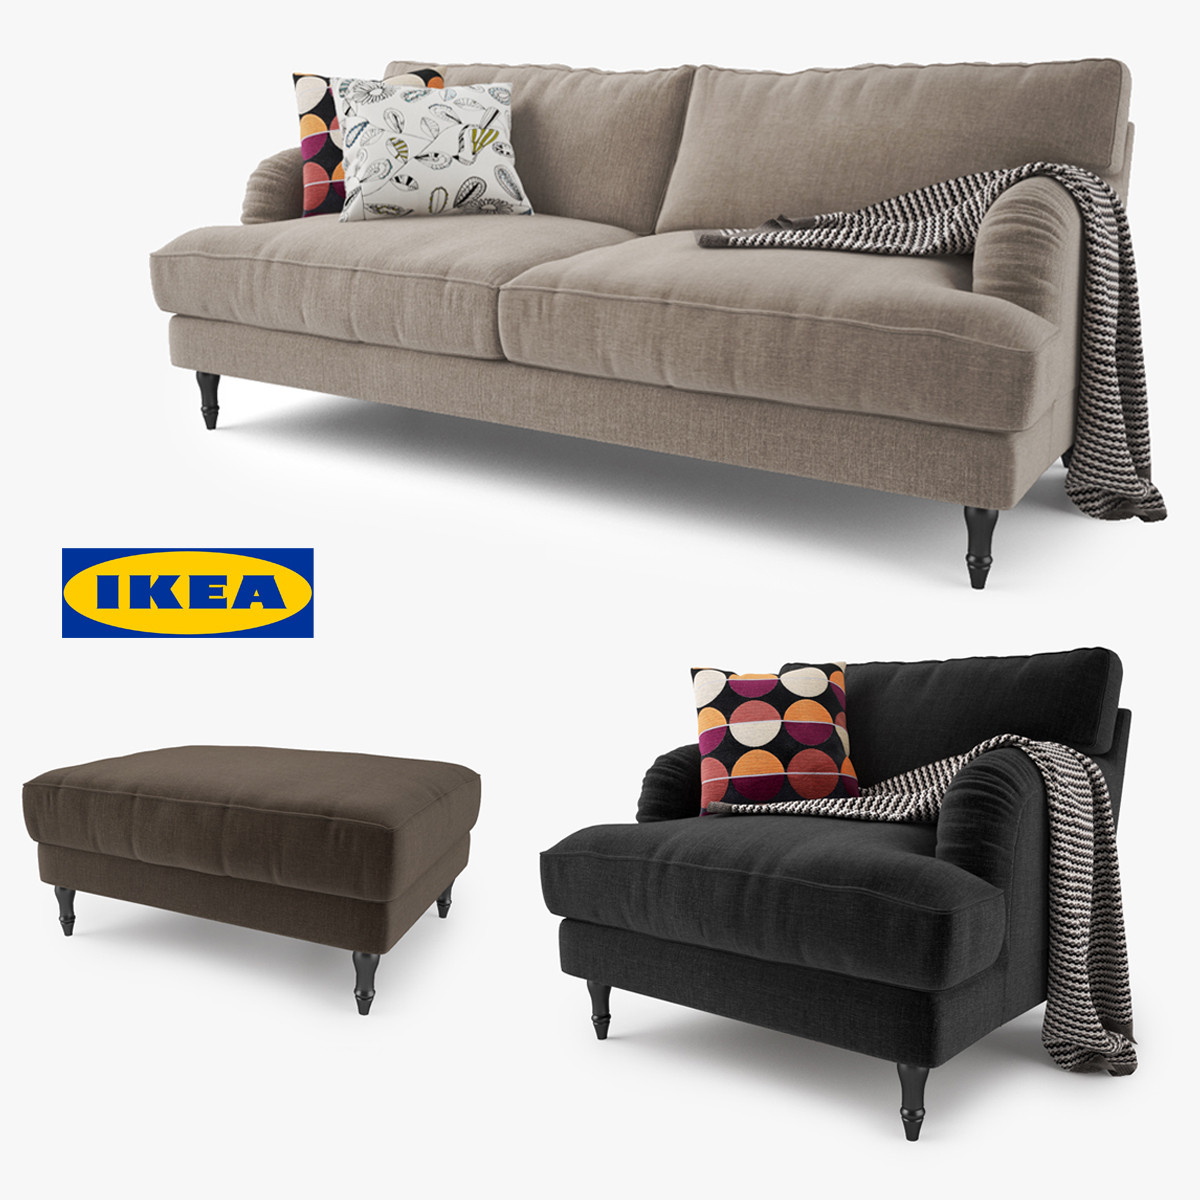 ikea sch slong stocksund design inspiration f r die neueste wohnkultur. Black Bedroom Furniture Sets. Home Design Ideas